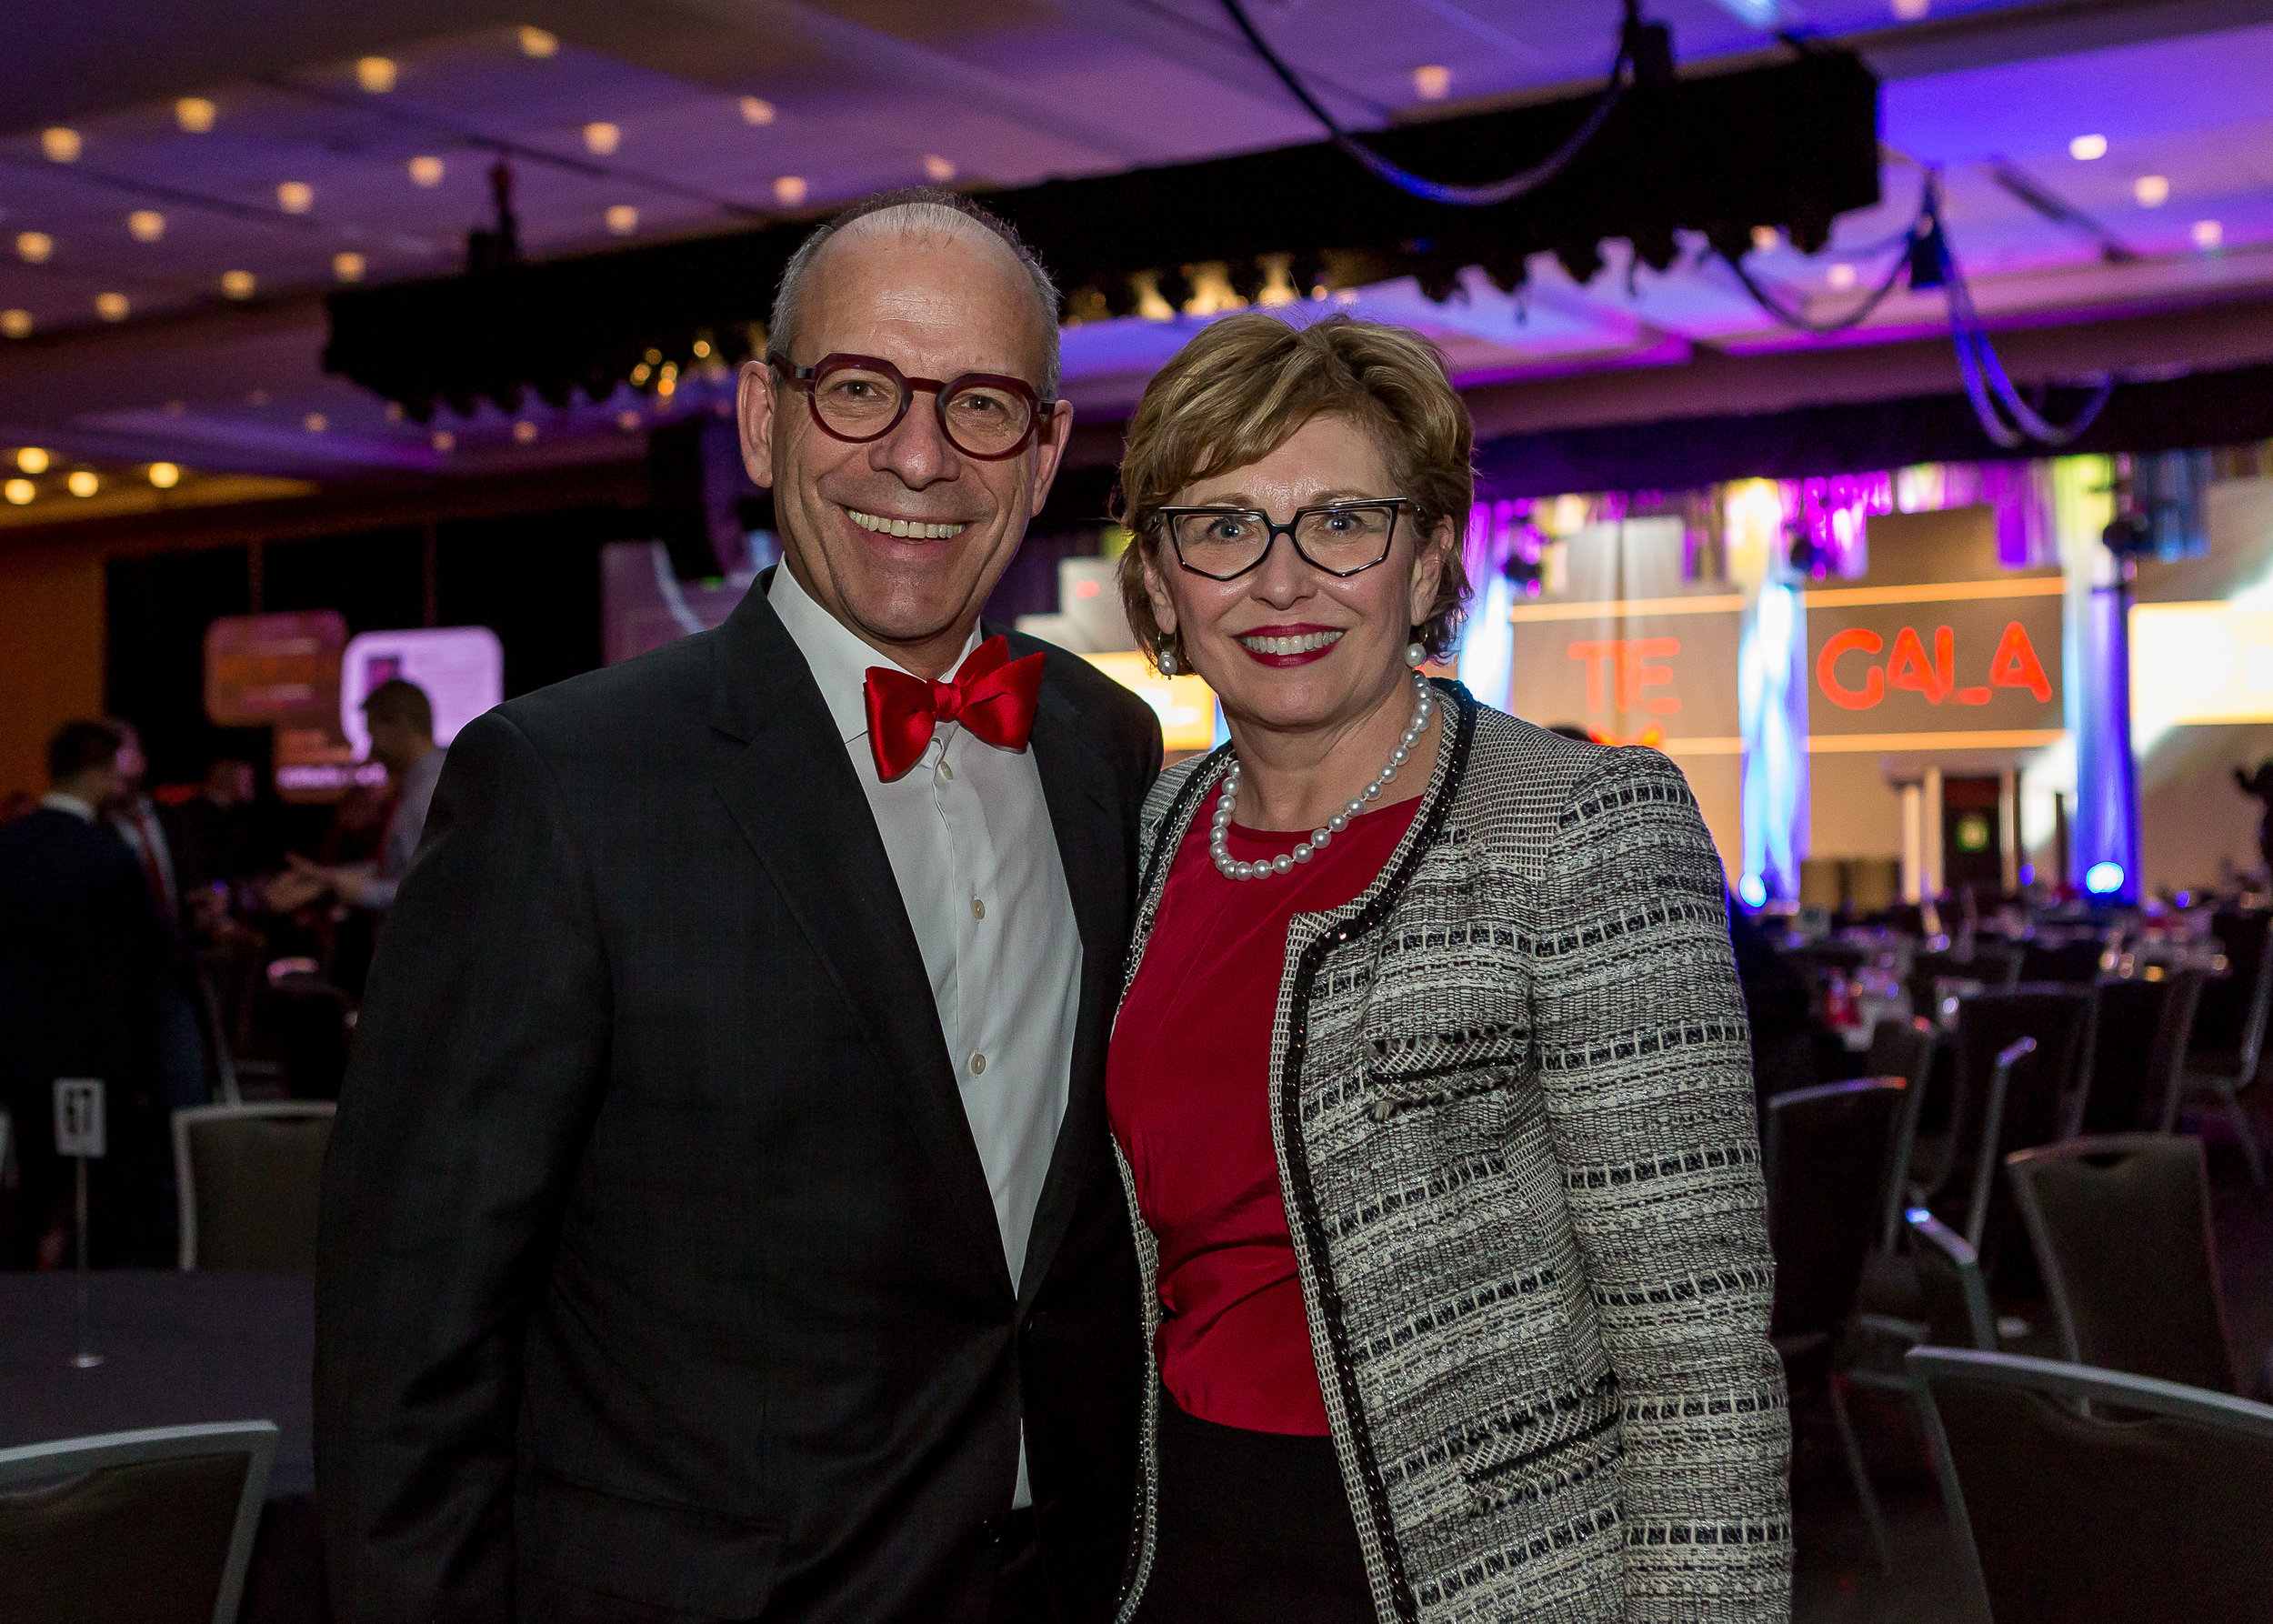 Leon and Vonnie Zupan were honoured for their donation at the 2017 Red Tie Gala